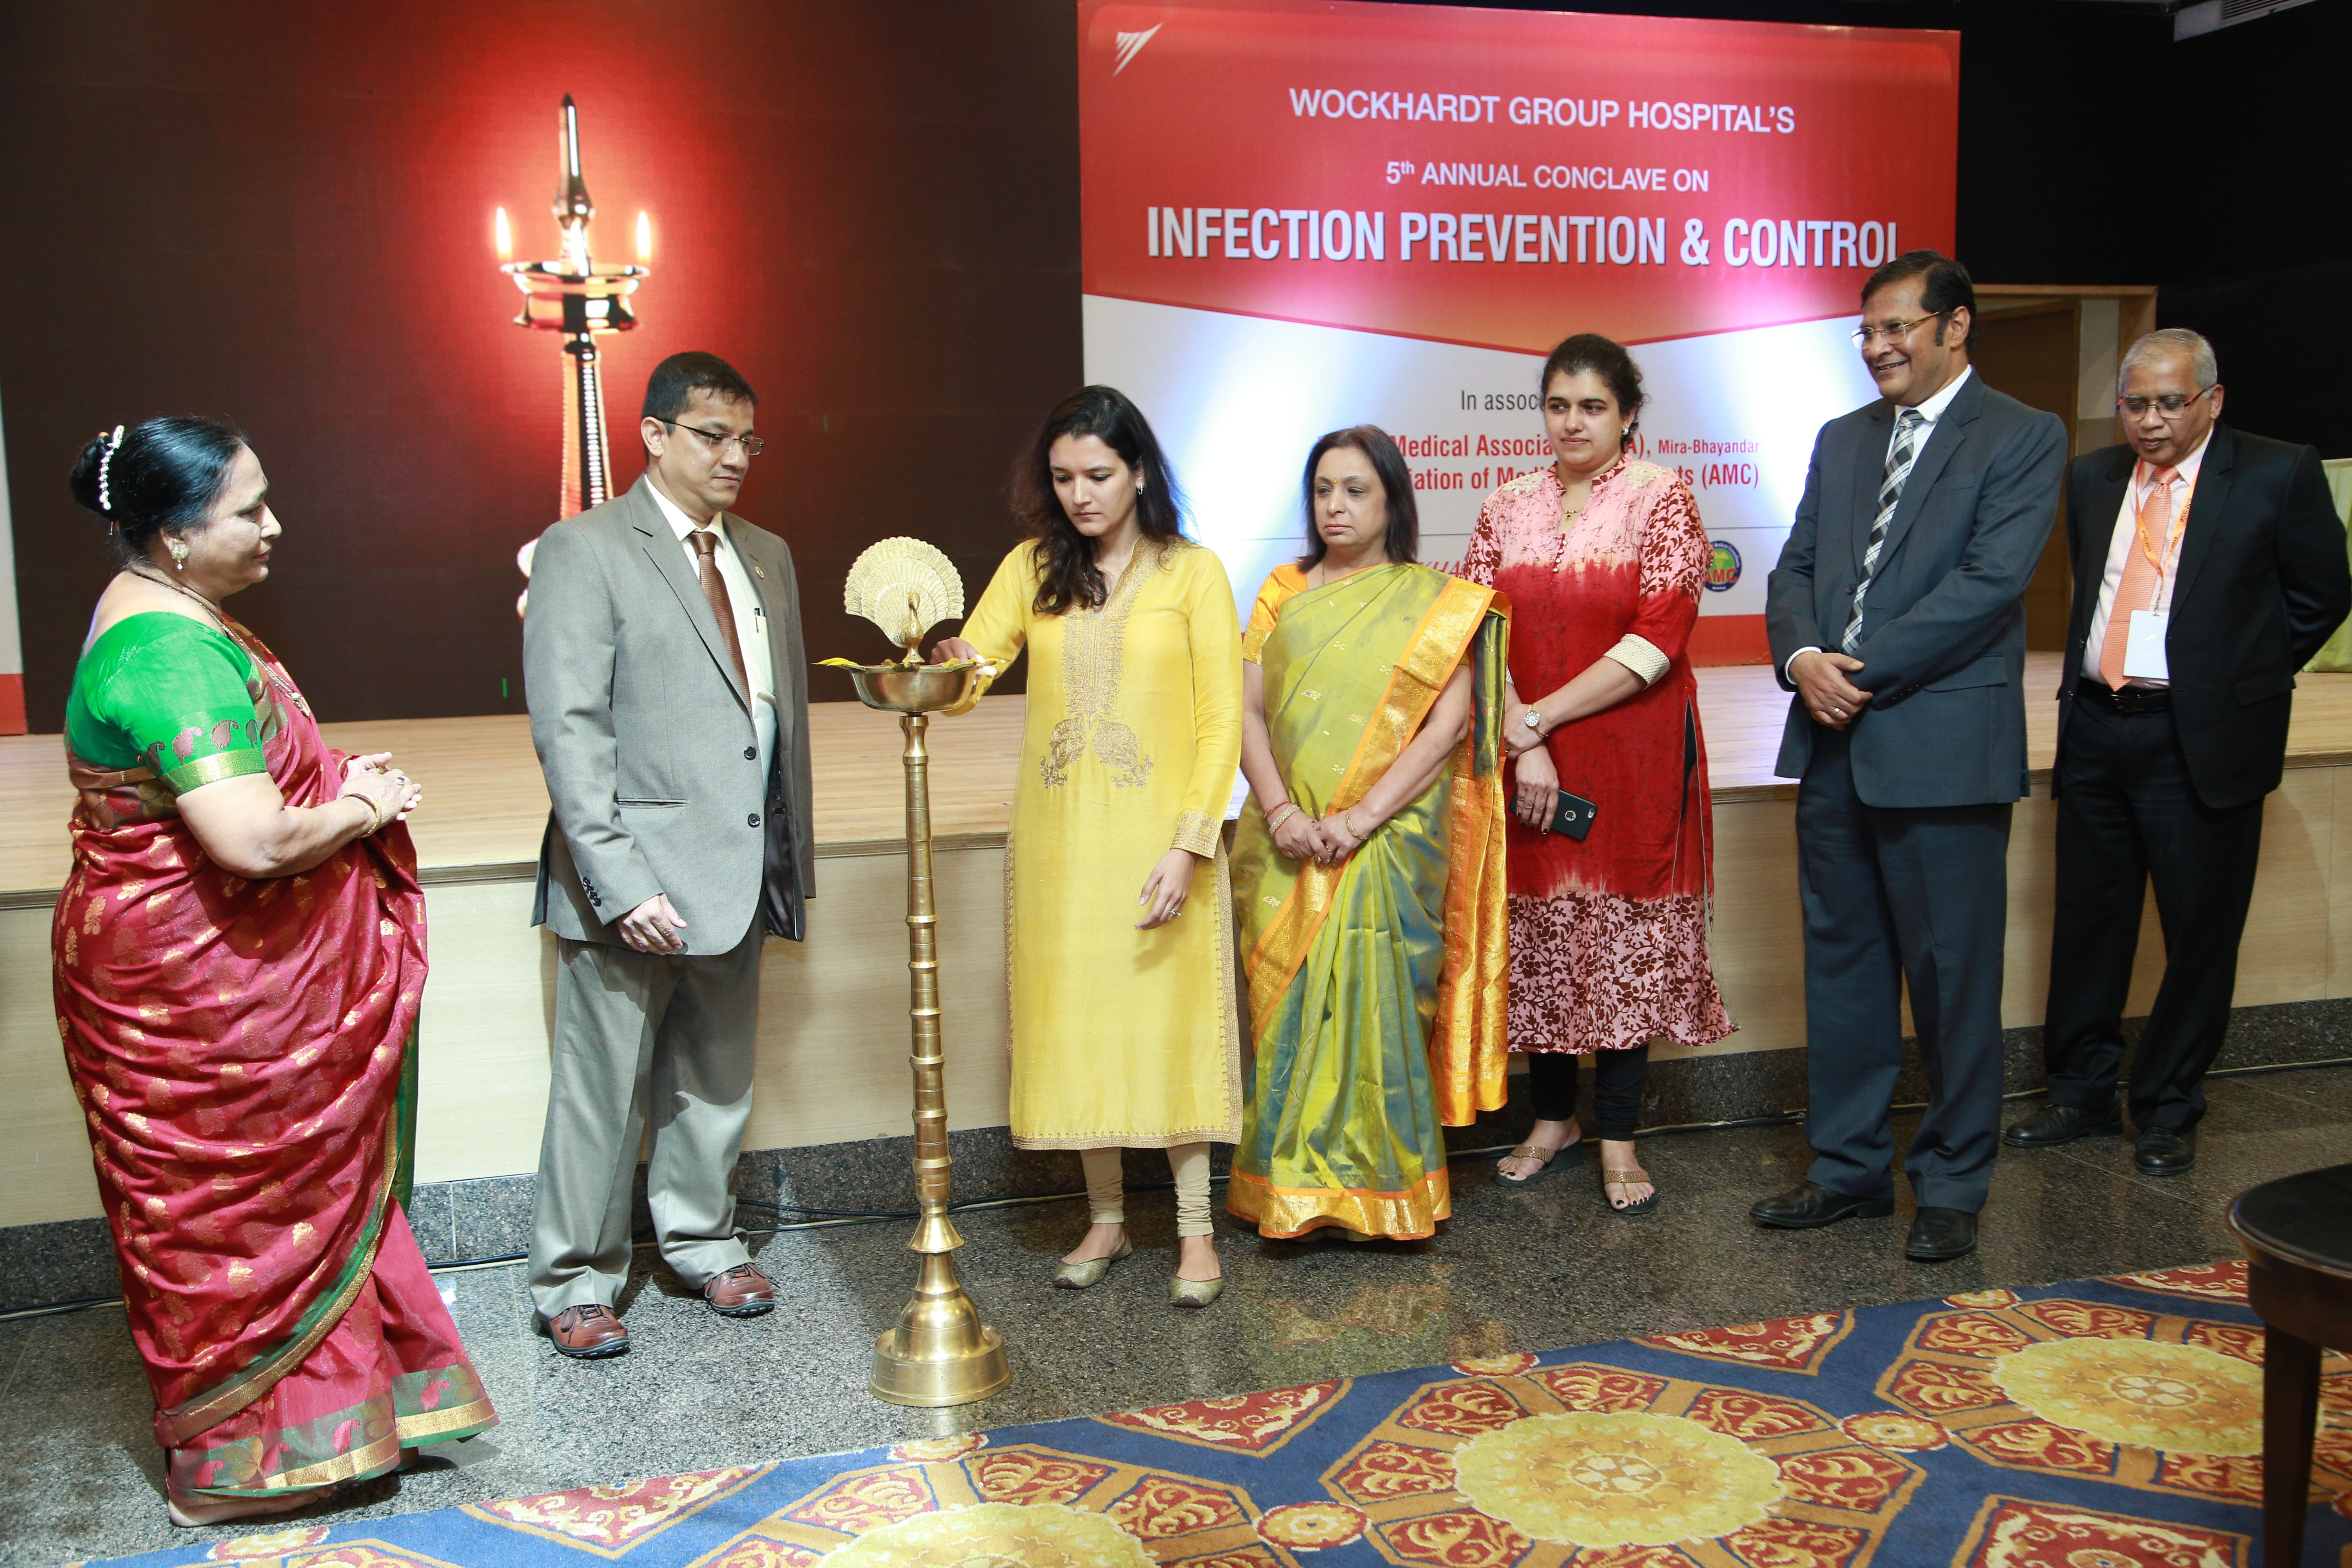 Ms. Zahabiya Khorakiwala, MD, Wockhardt Hospitals (3rd from right) along with other dignitaies lighting the lamp to inaugurate hospital's 5th Infection Prevention and Control Conclave / Photo By Sachin Murdeshwar GPN